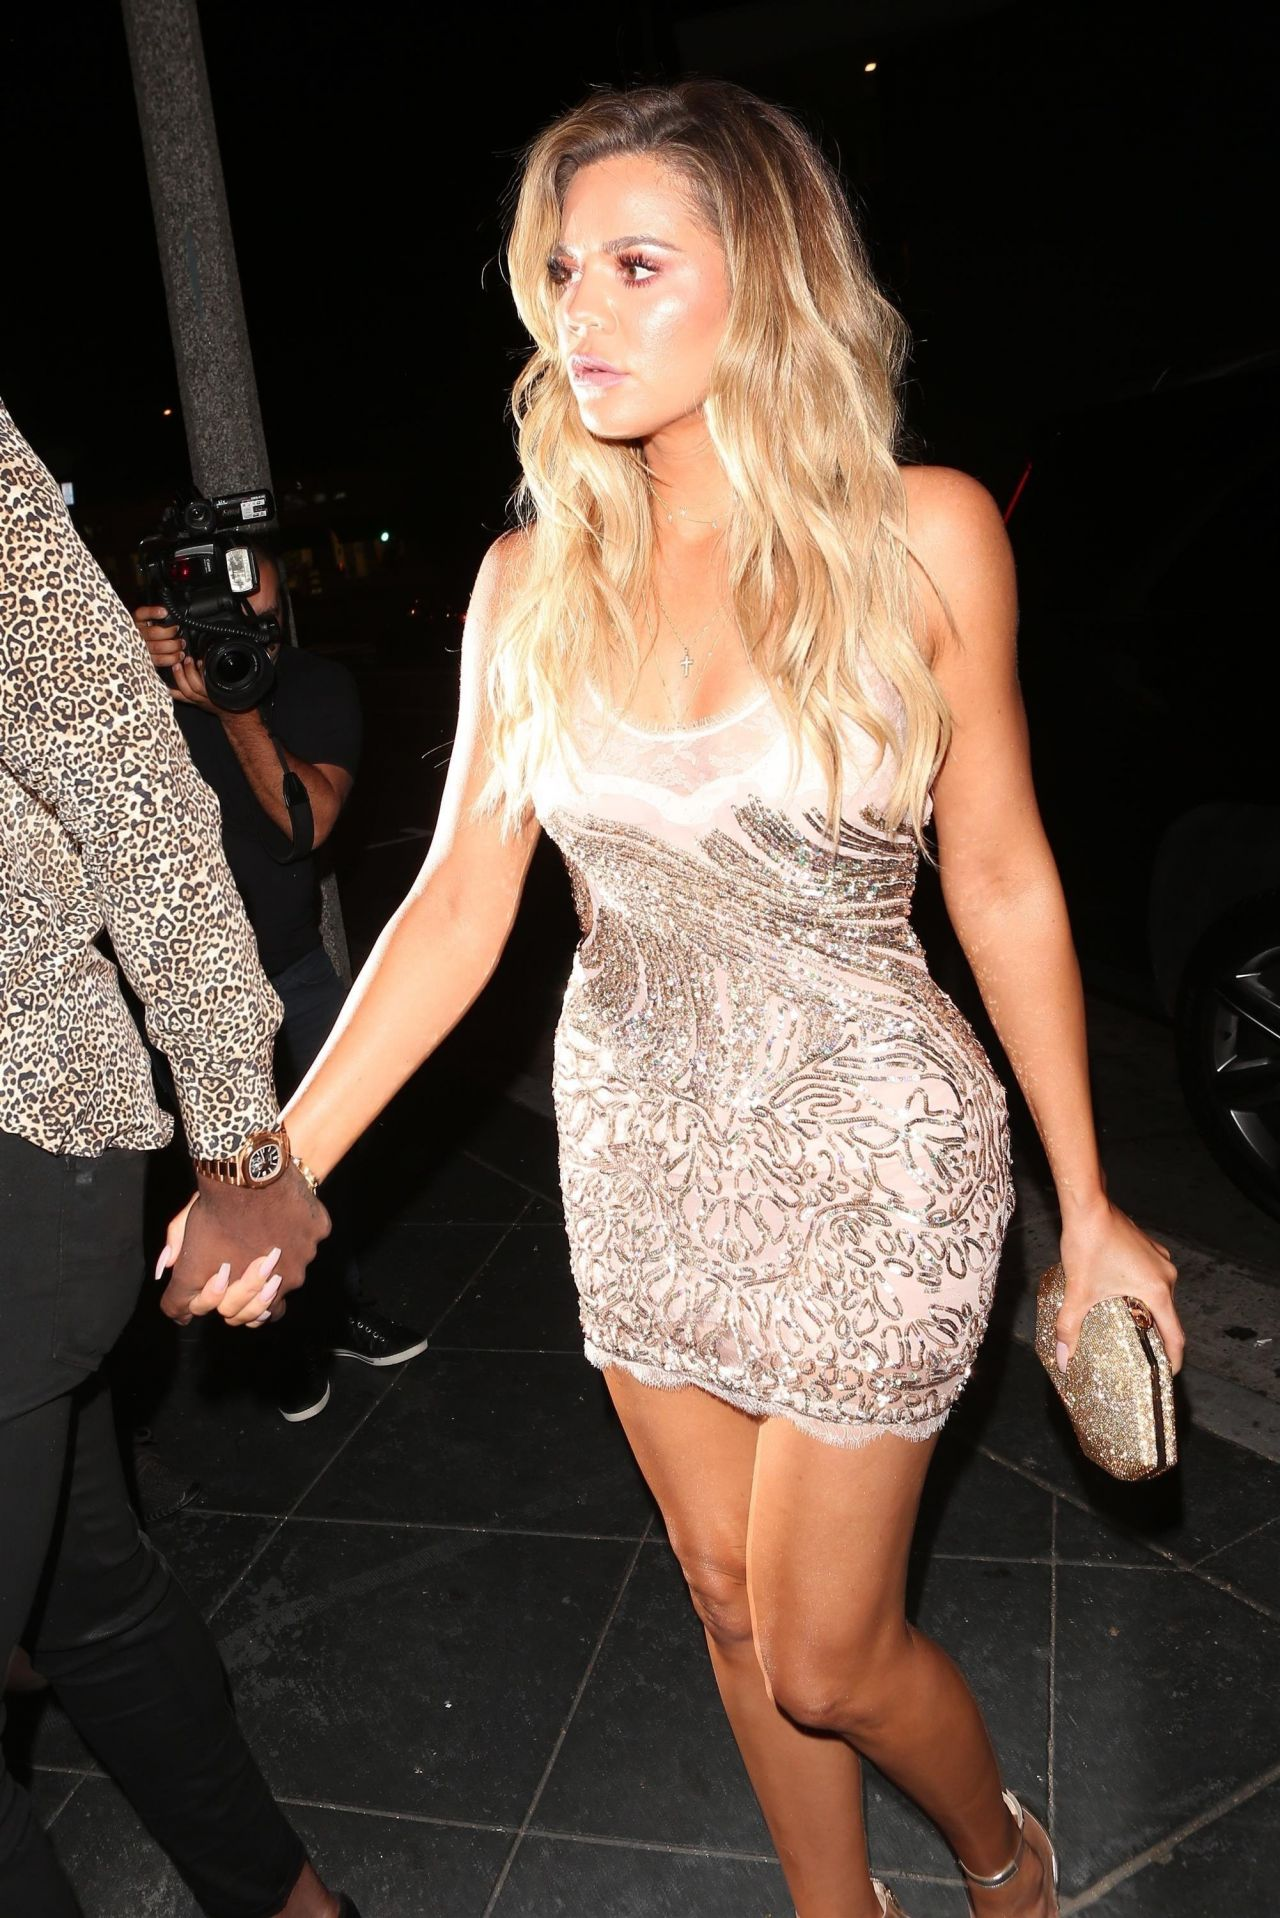 khloe kardashian - photo #18